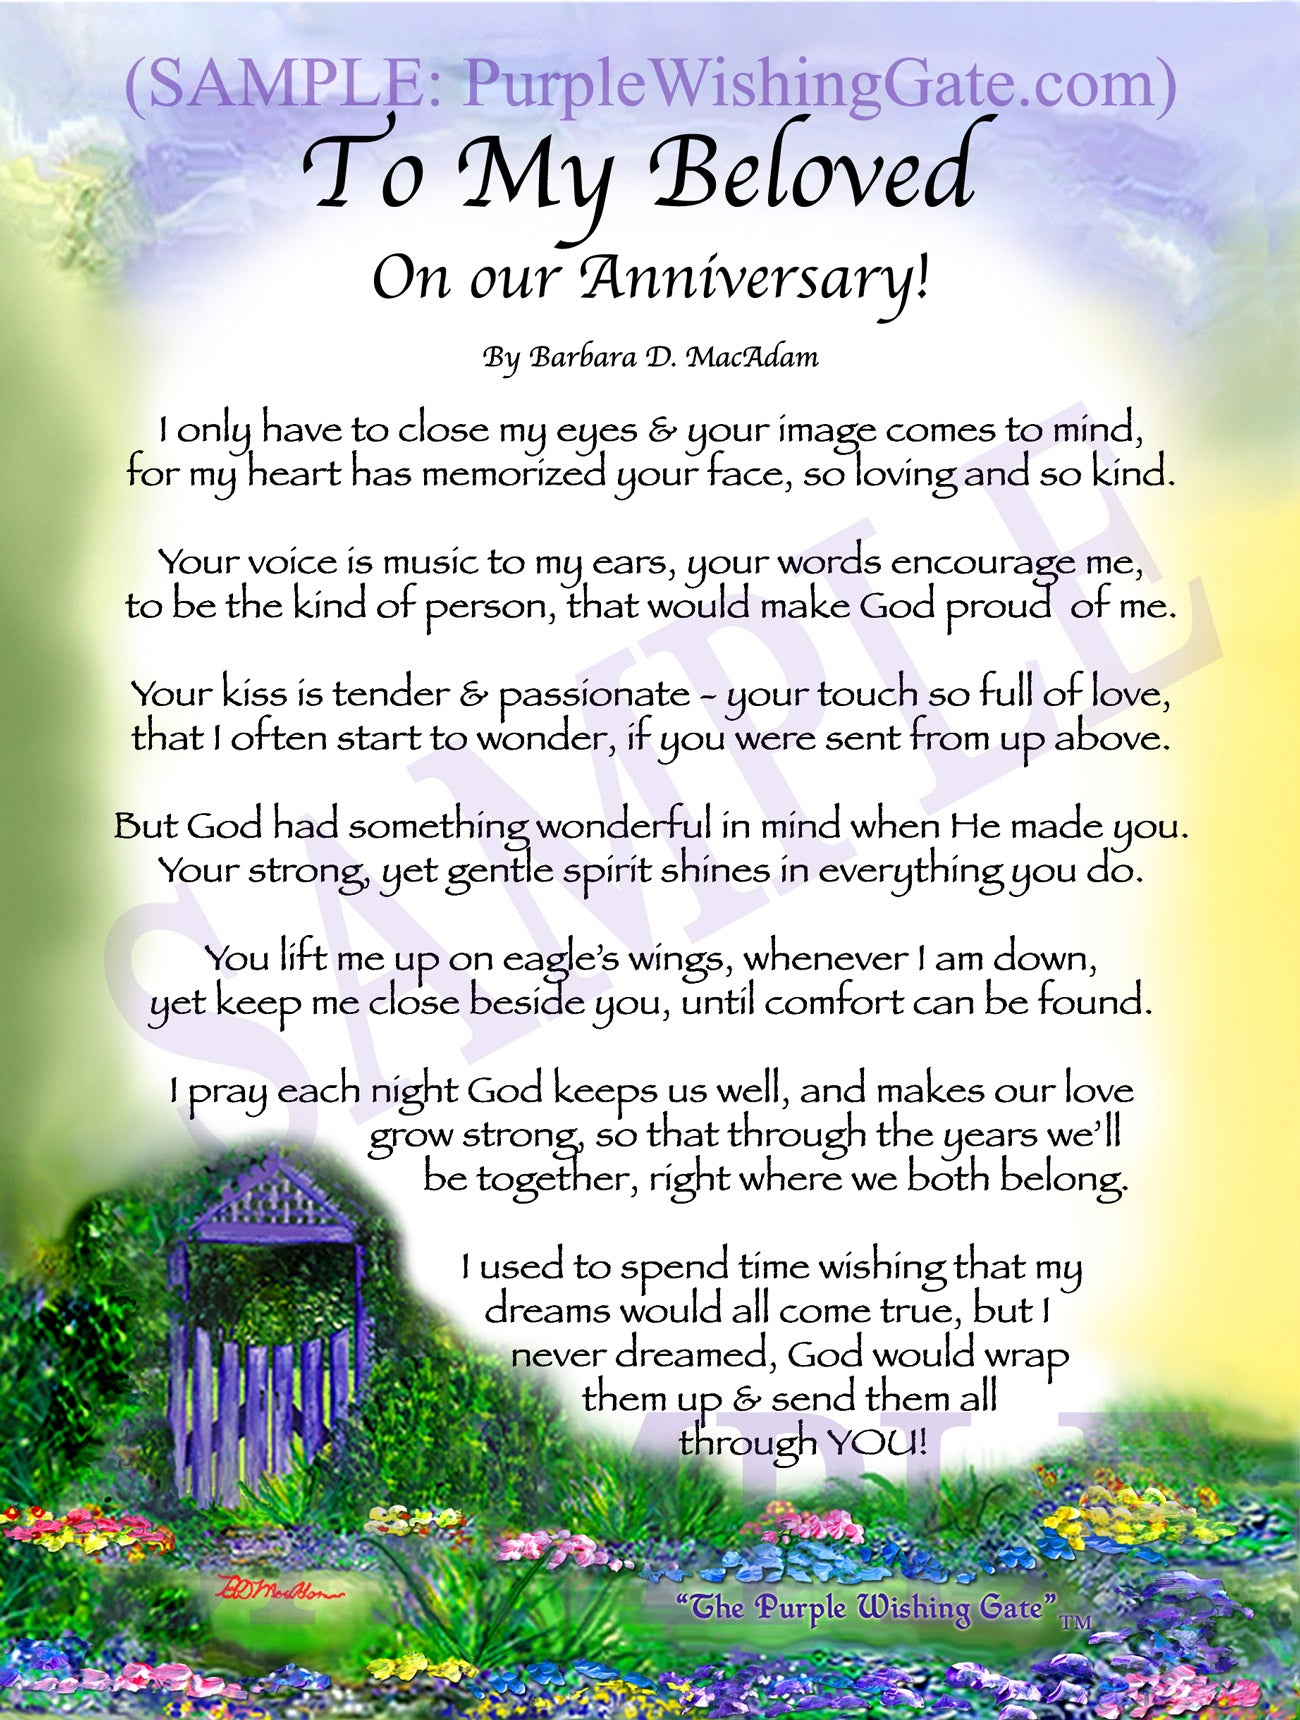 To My Beloved On our Anniversary! - Anniversary Gift - PurpleWishingGate.com